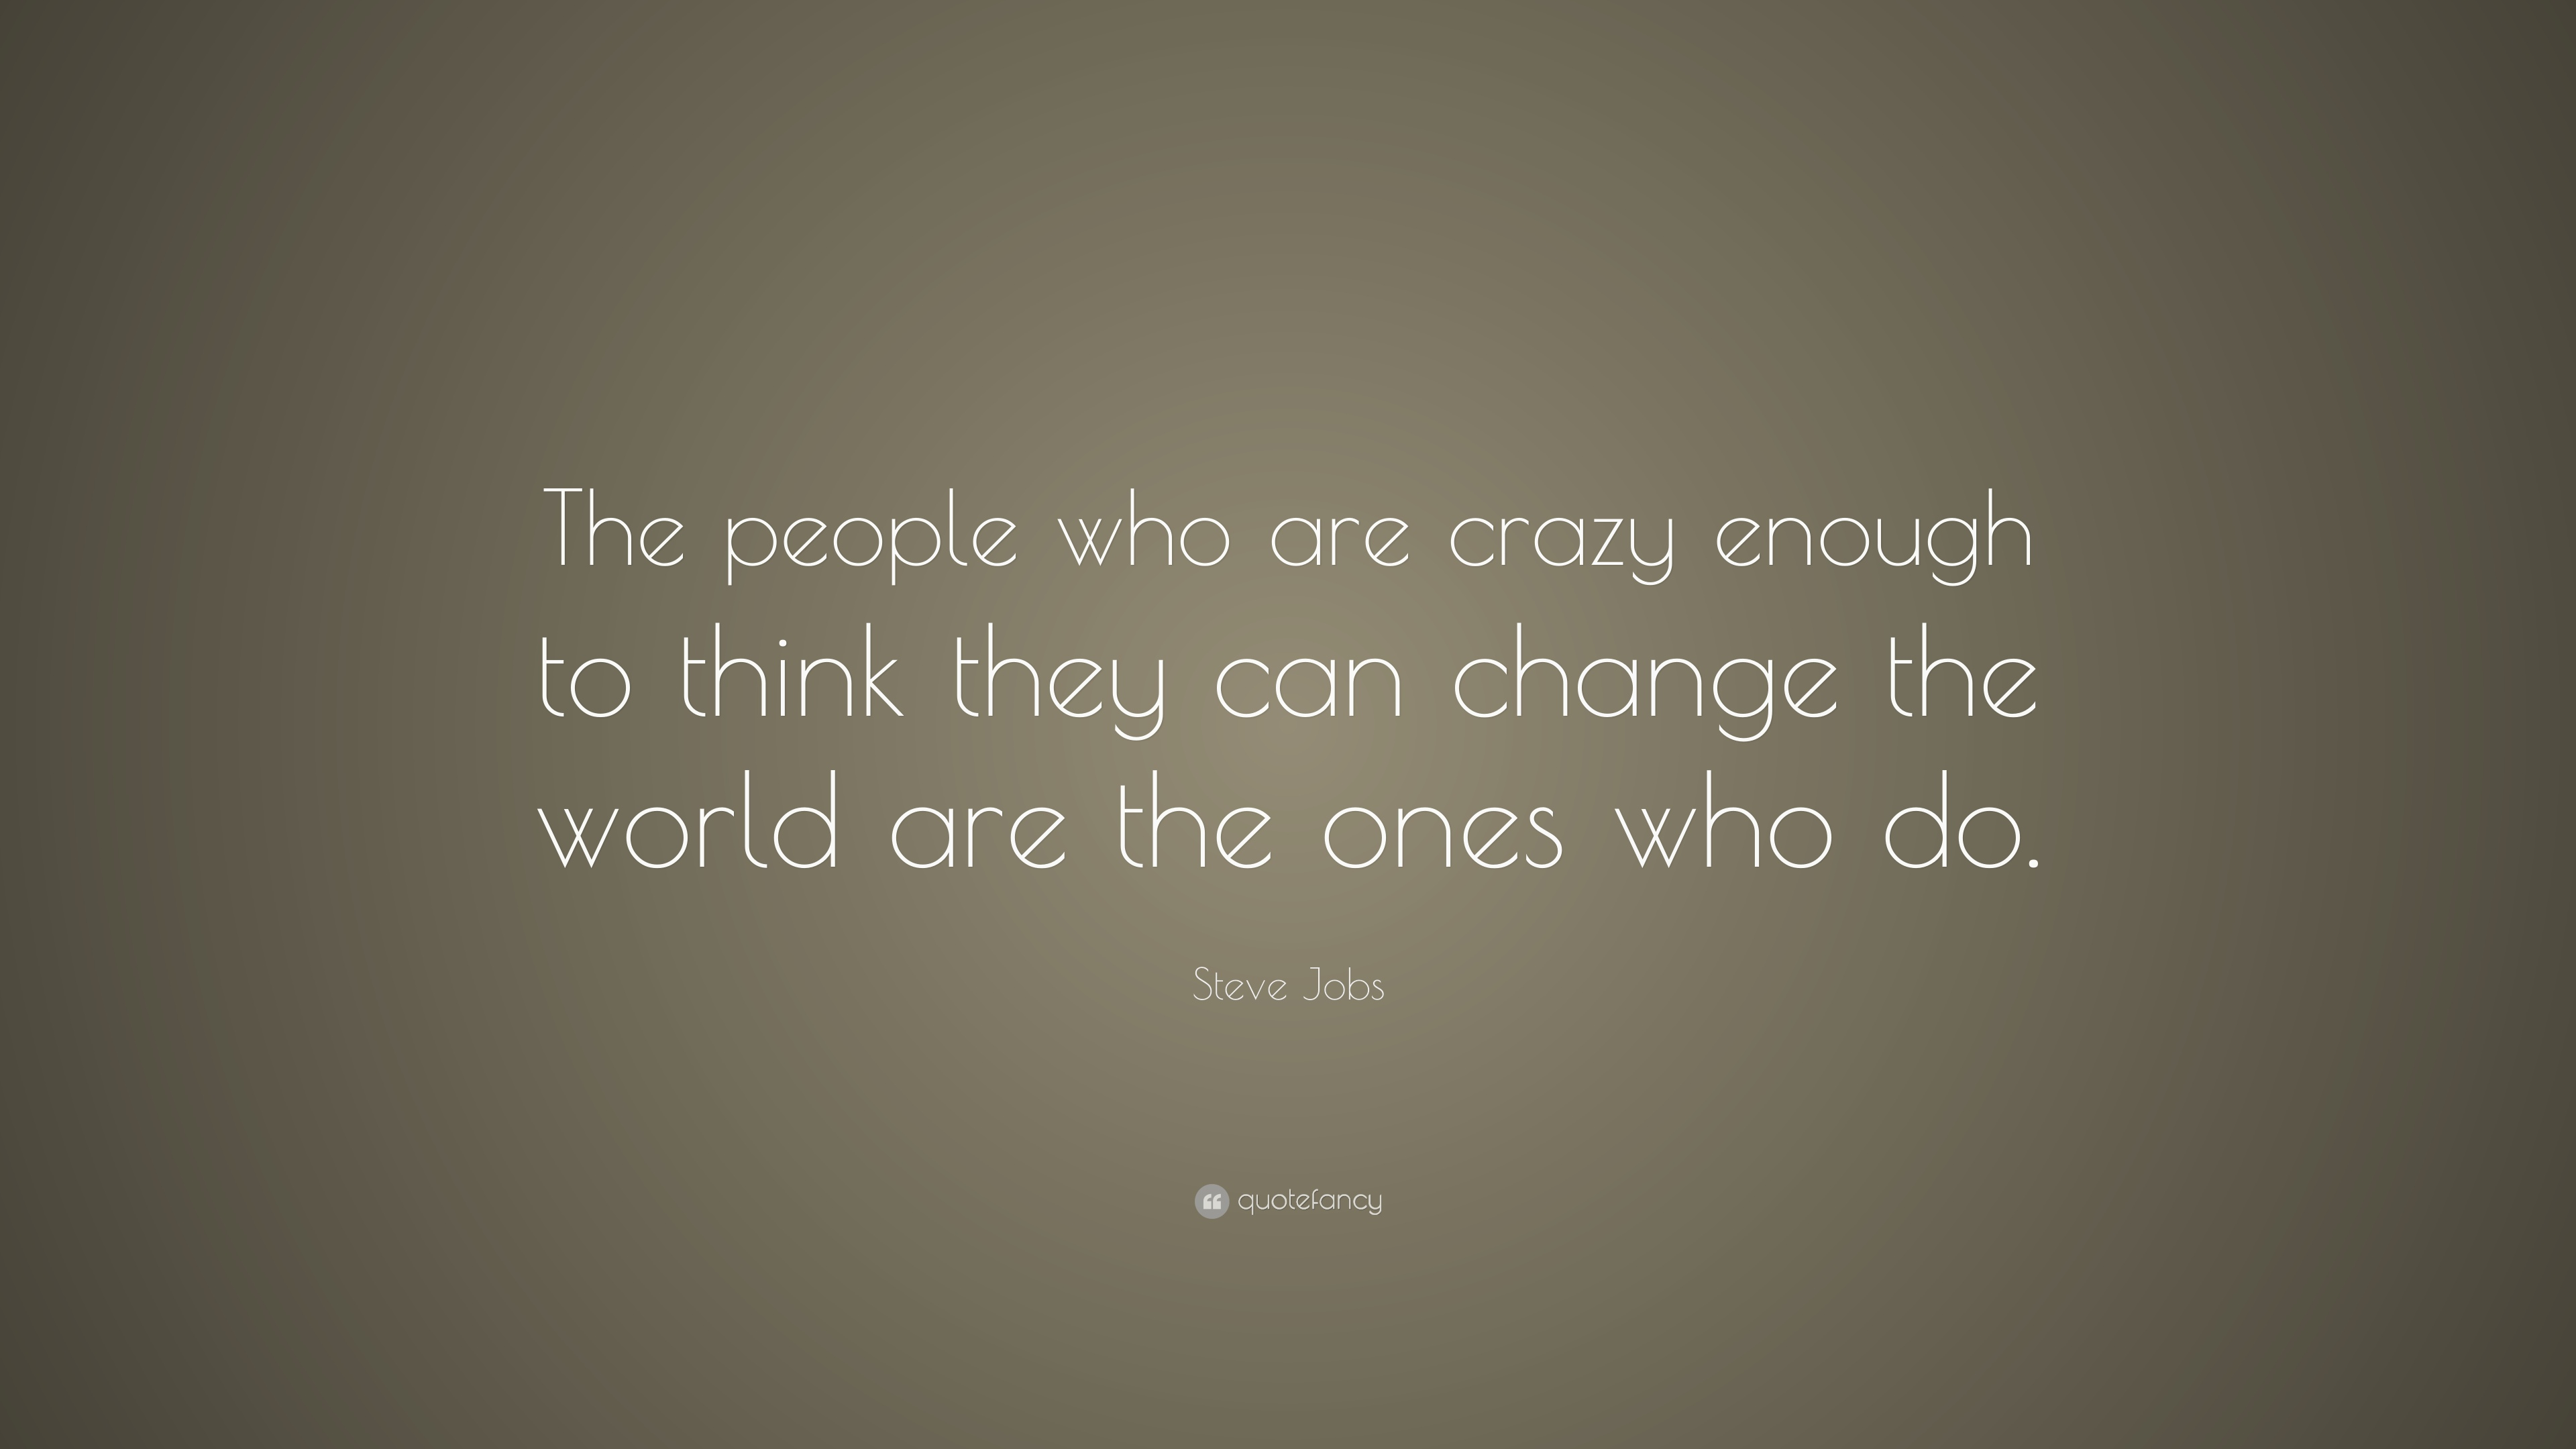 The Who People Are Crazy Enough Steve Jobs Quotes